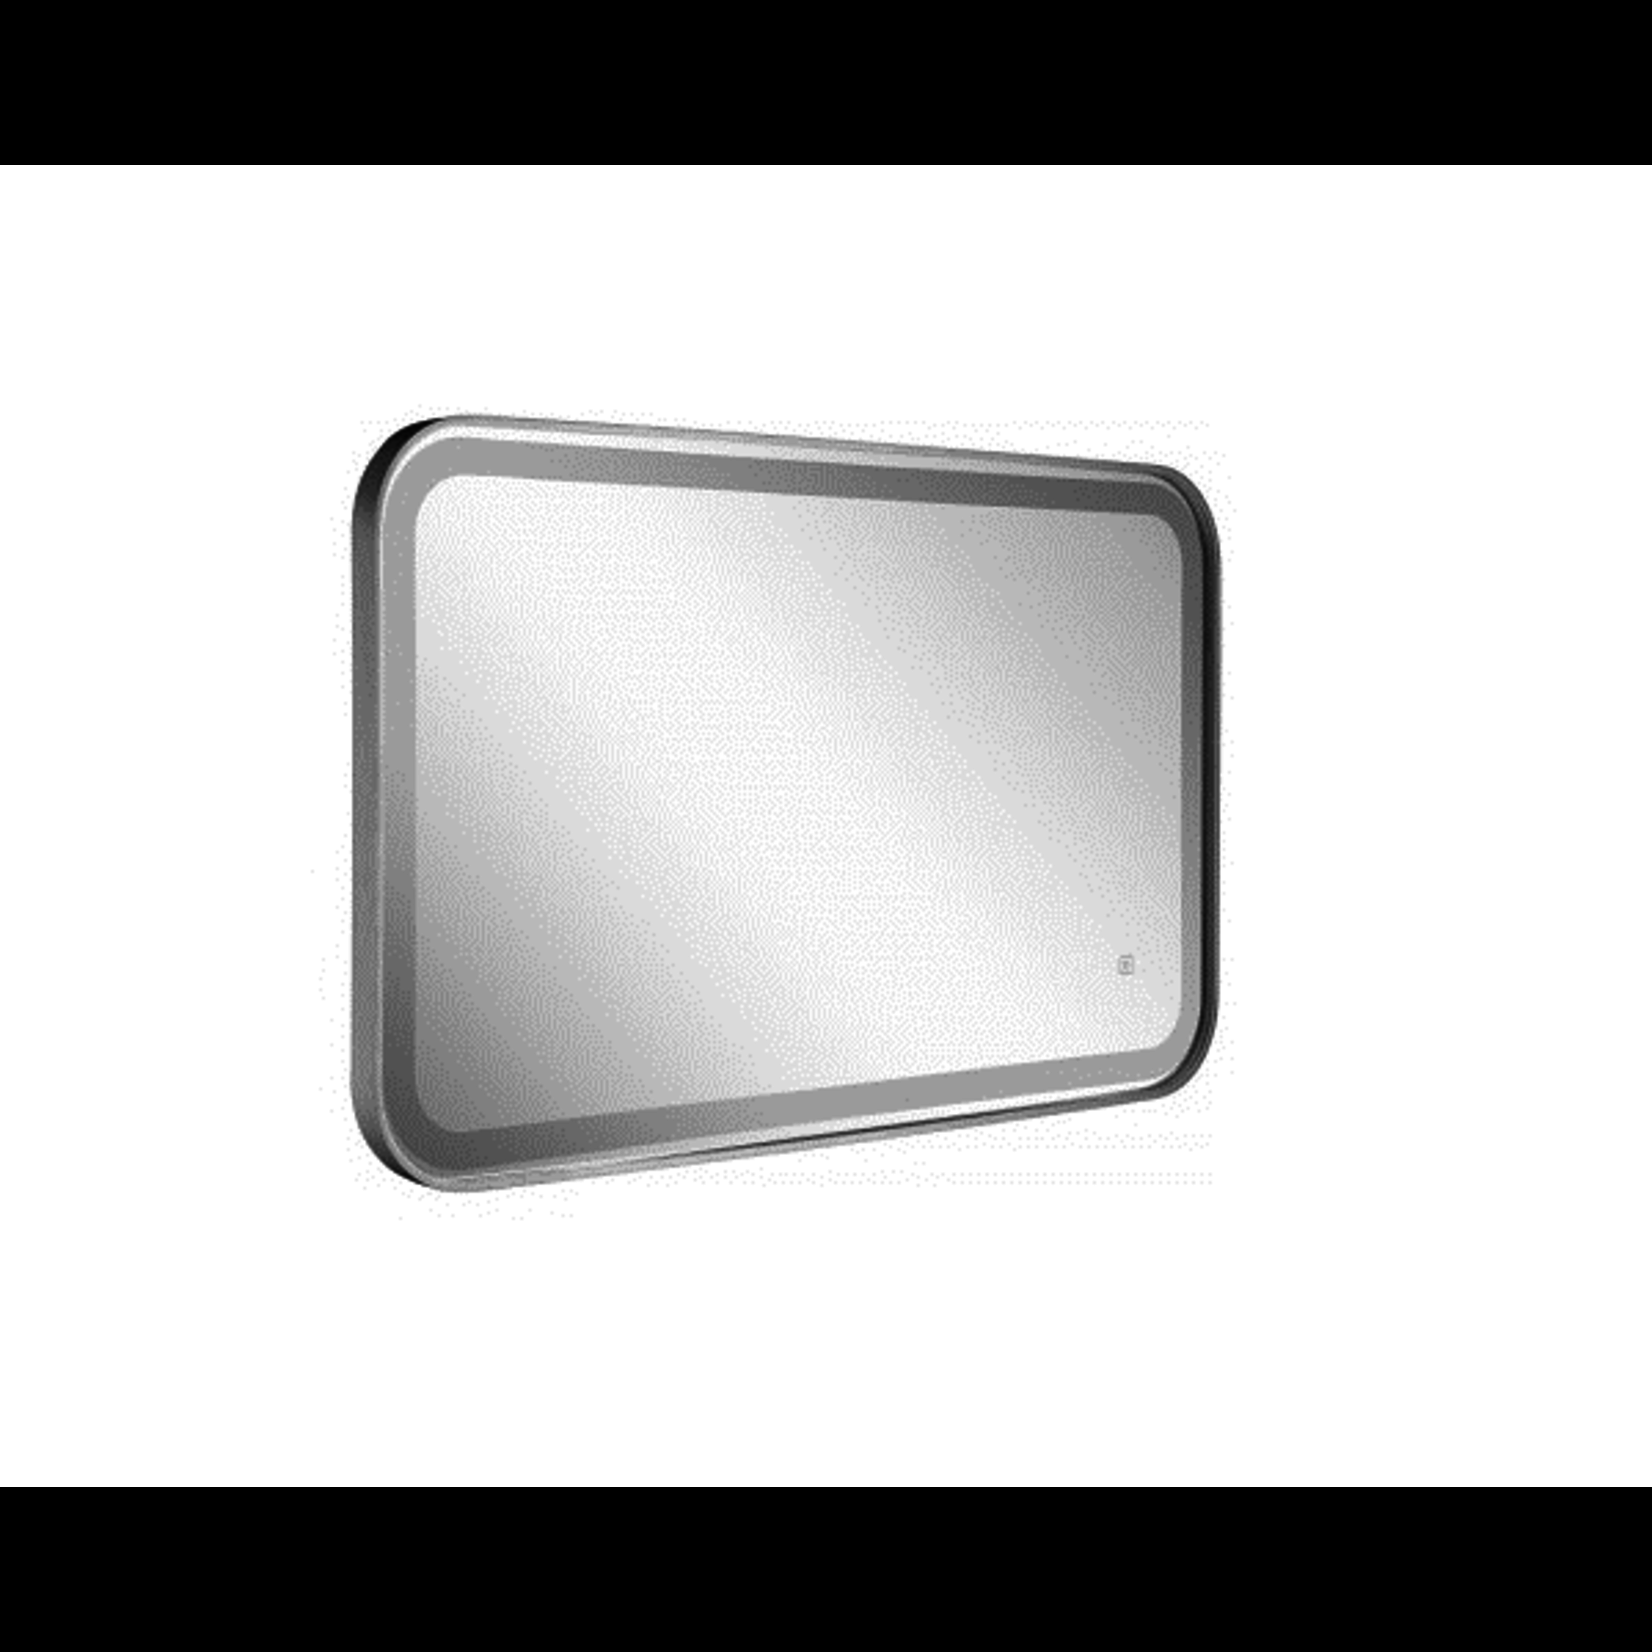 Rectangular LED mirror with rounded black borders